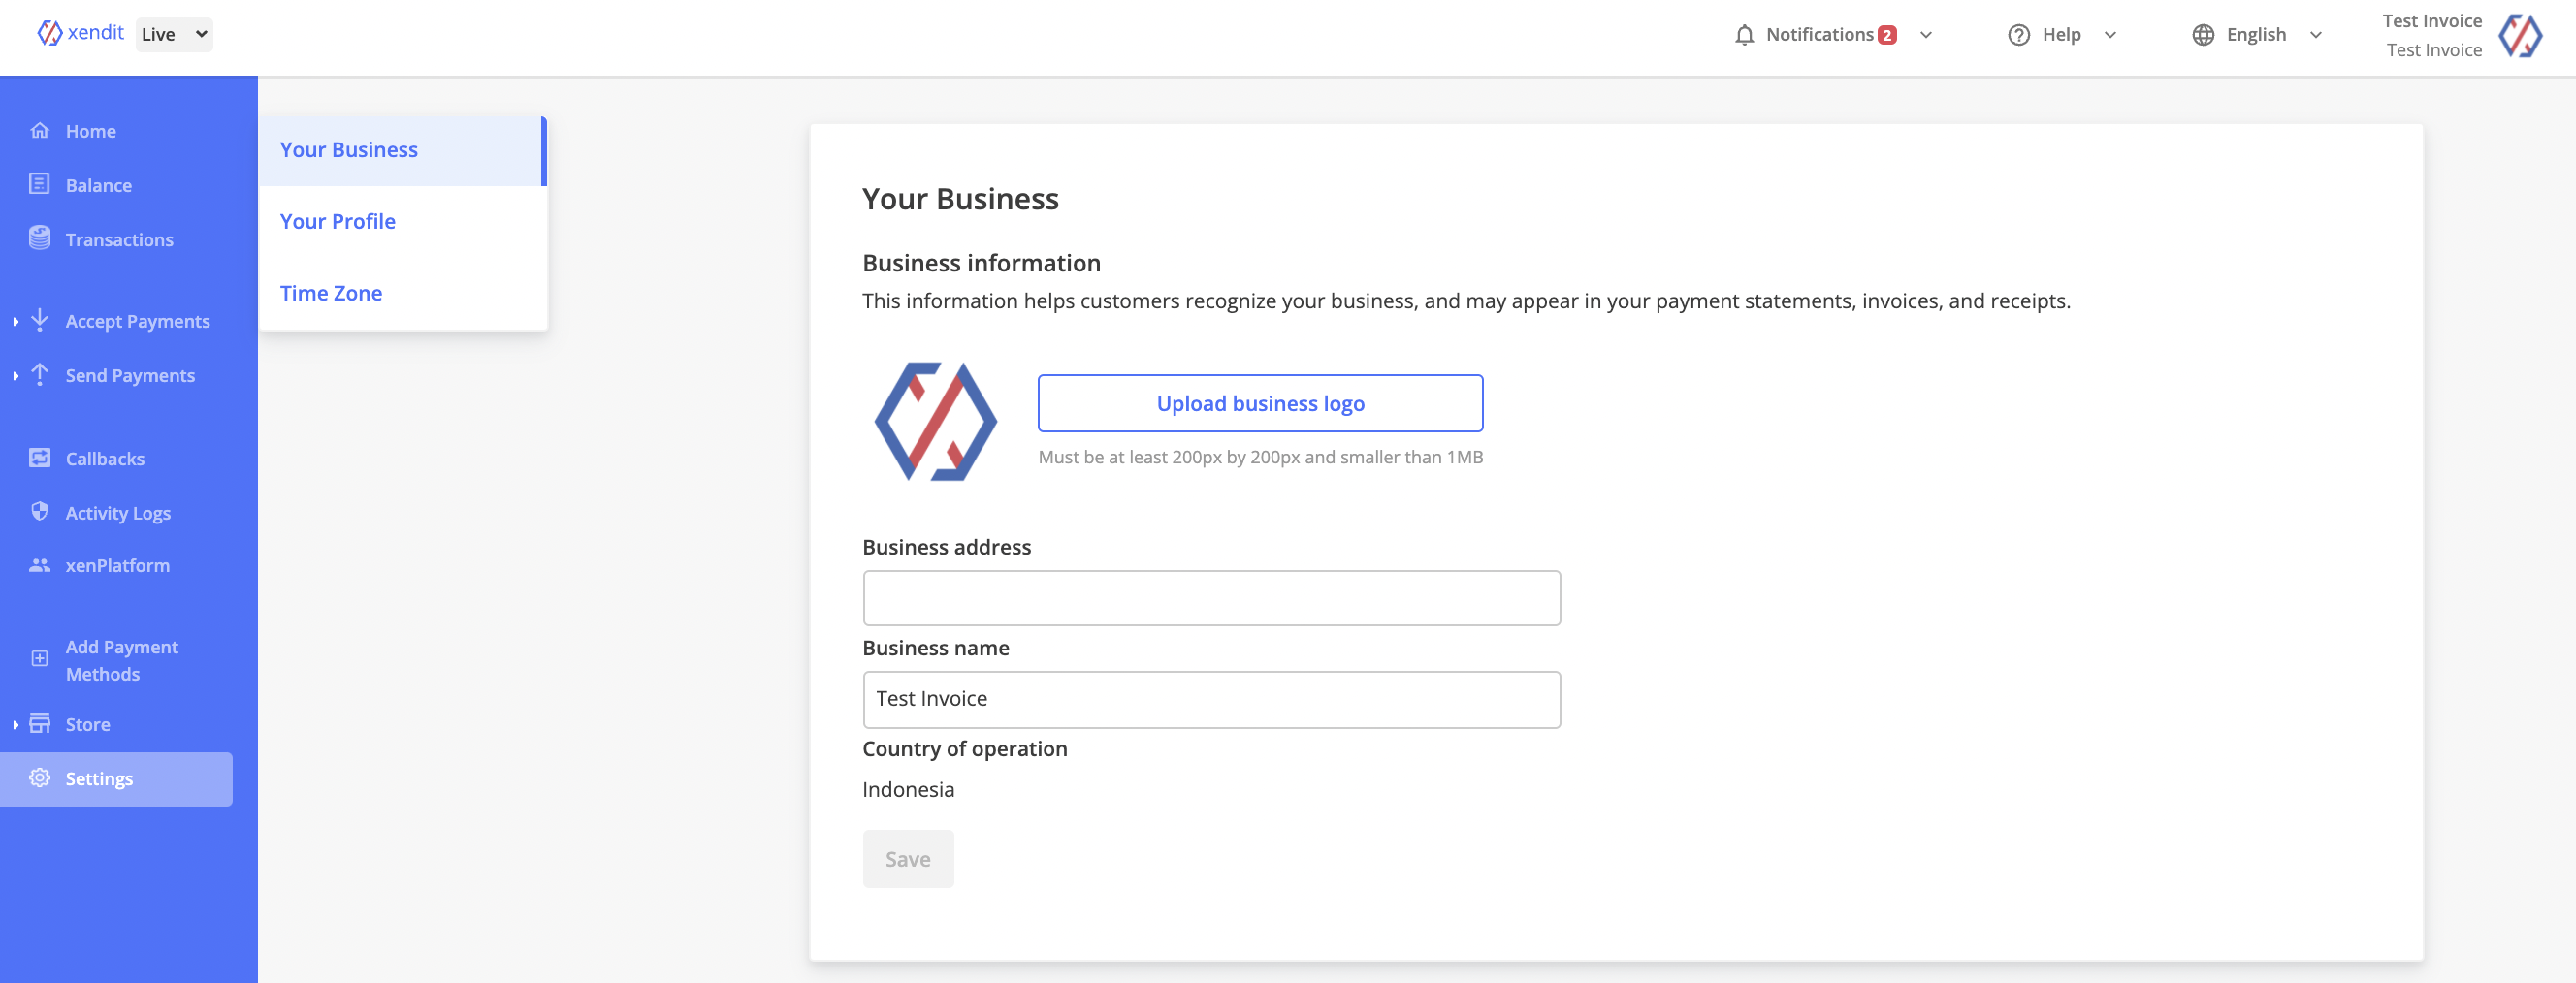 Your Business Setting Page